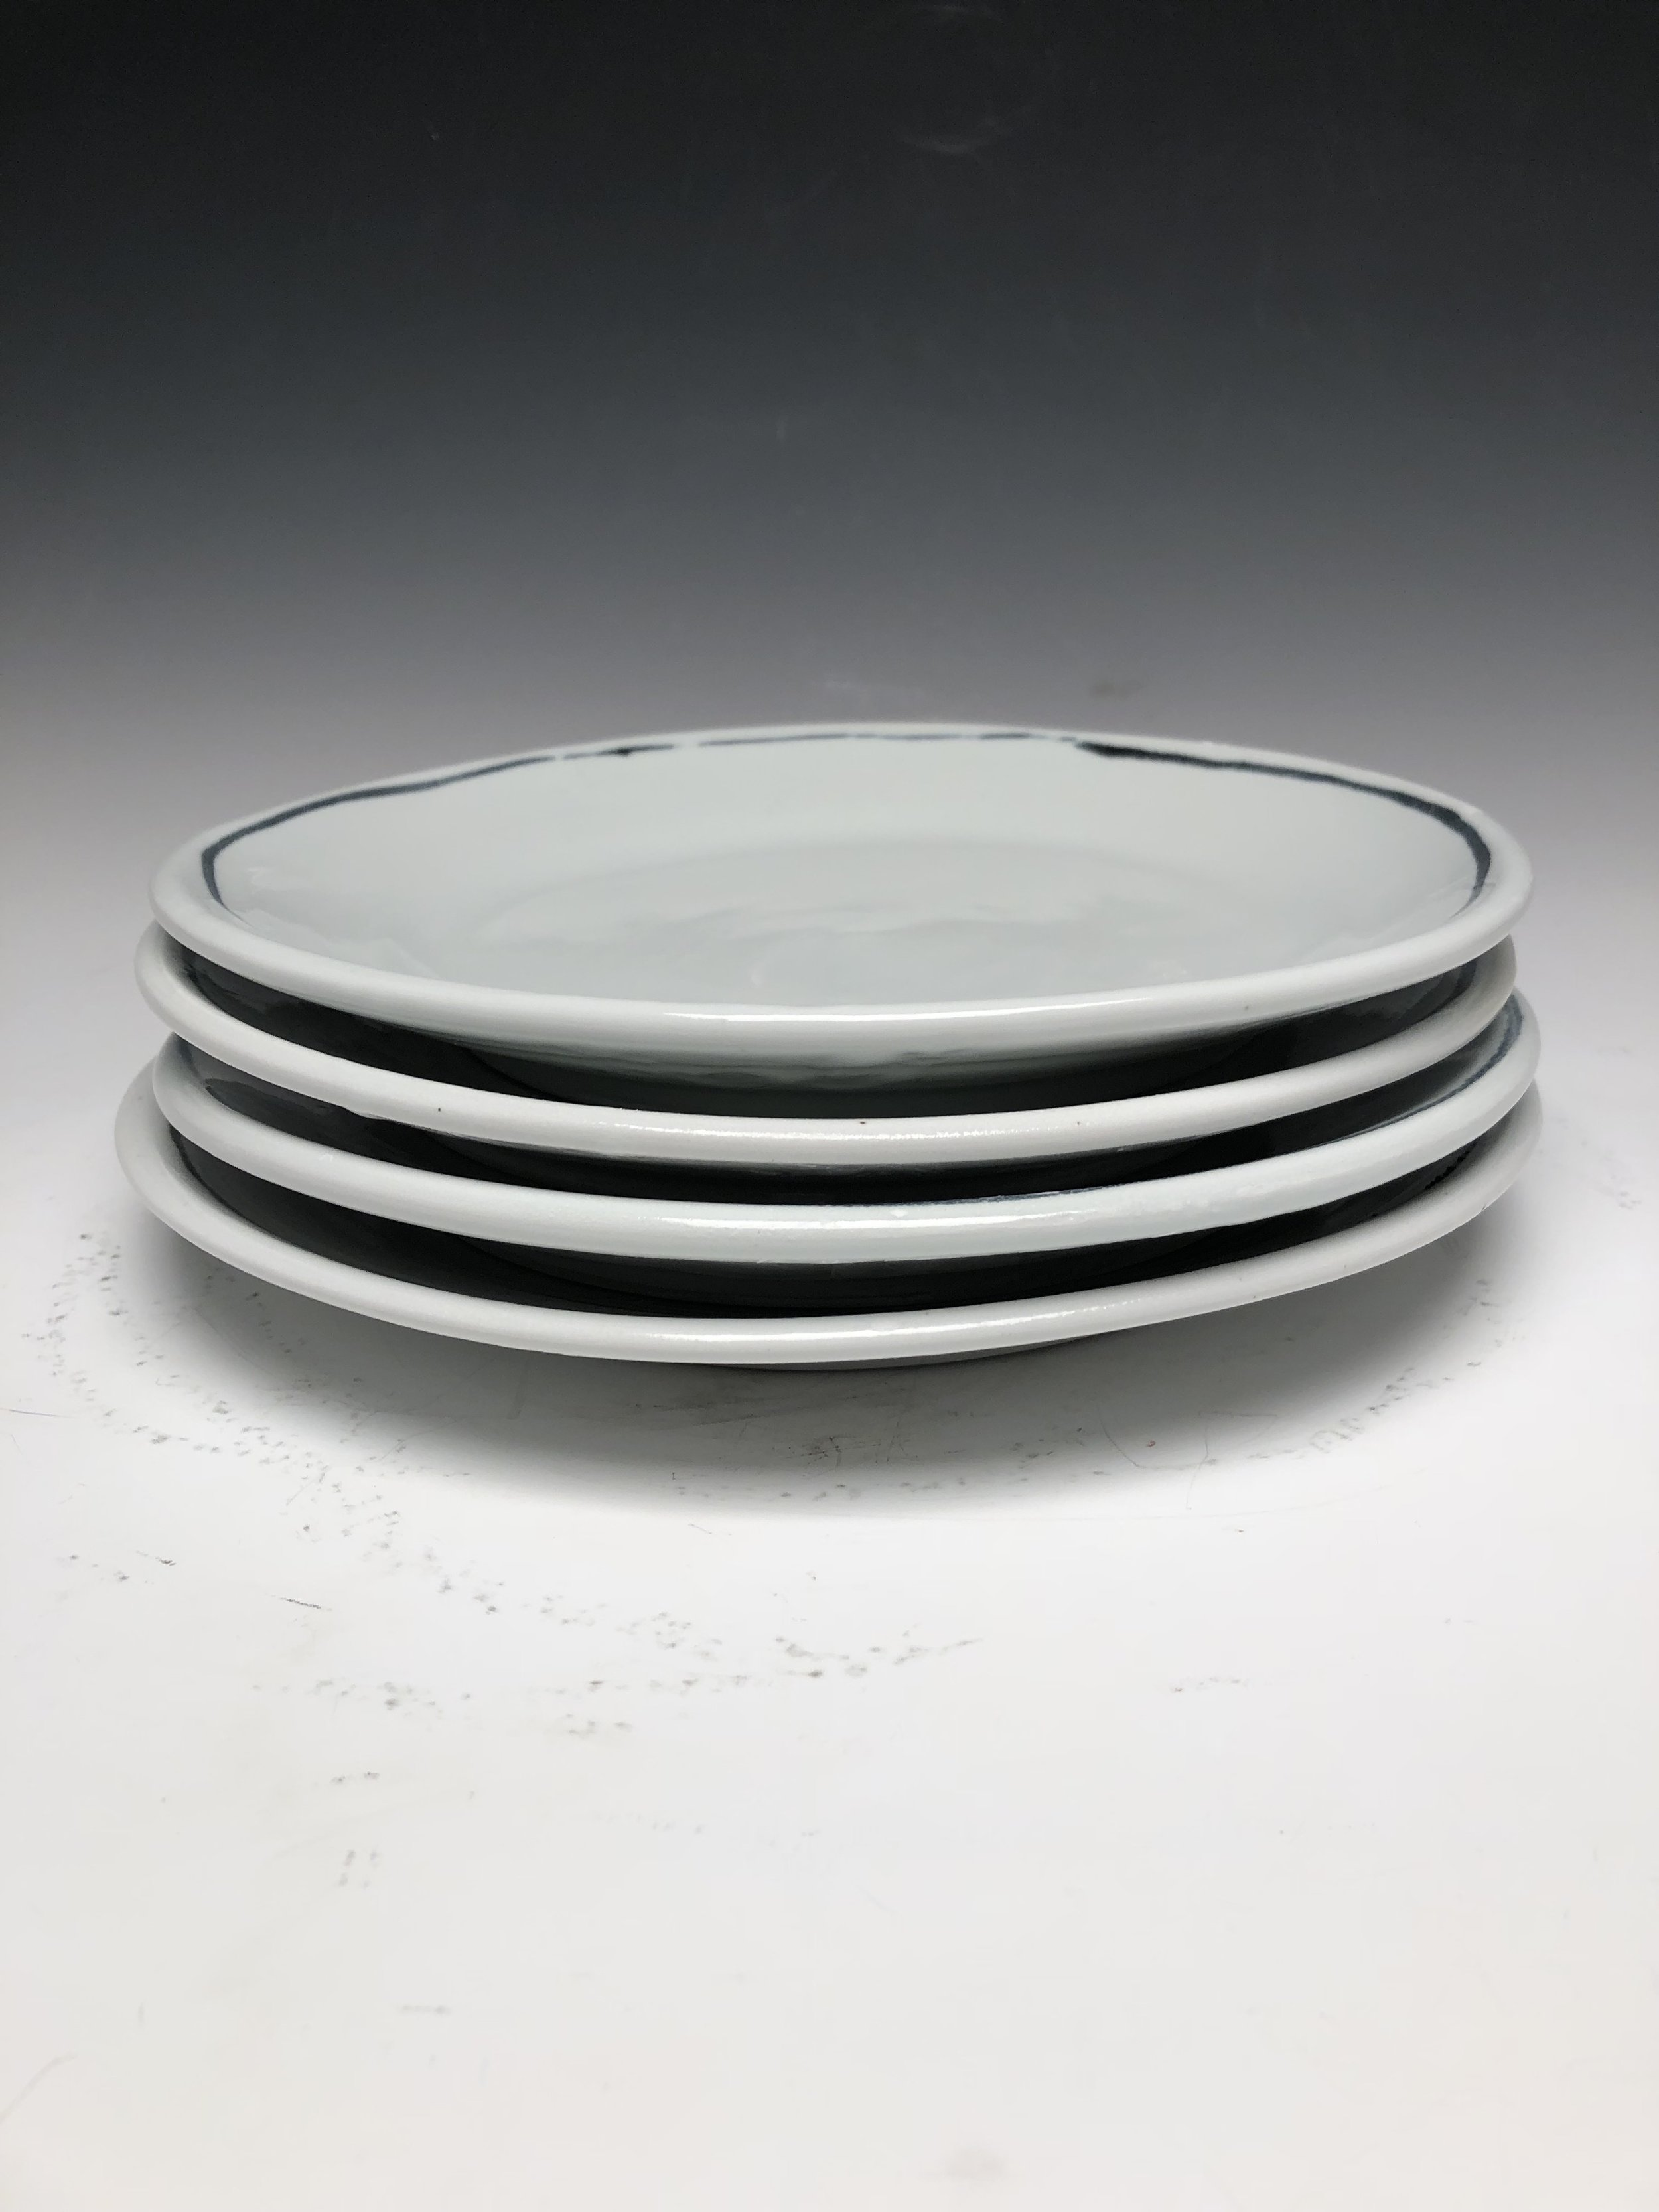 10 inch porcelain dinner plate. White with deep blue black line.